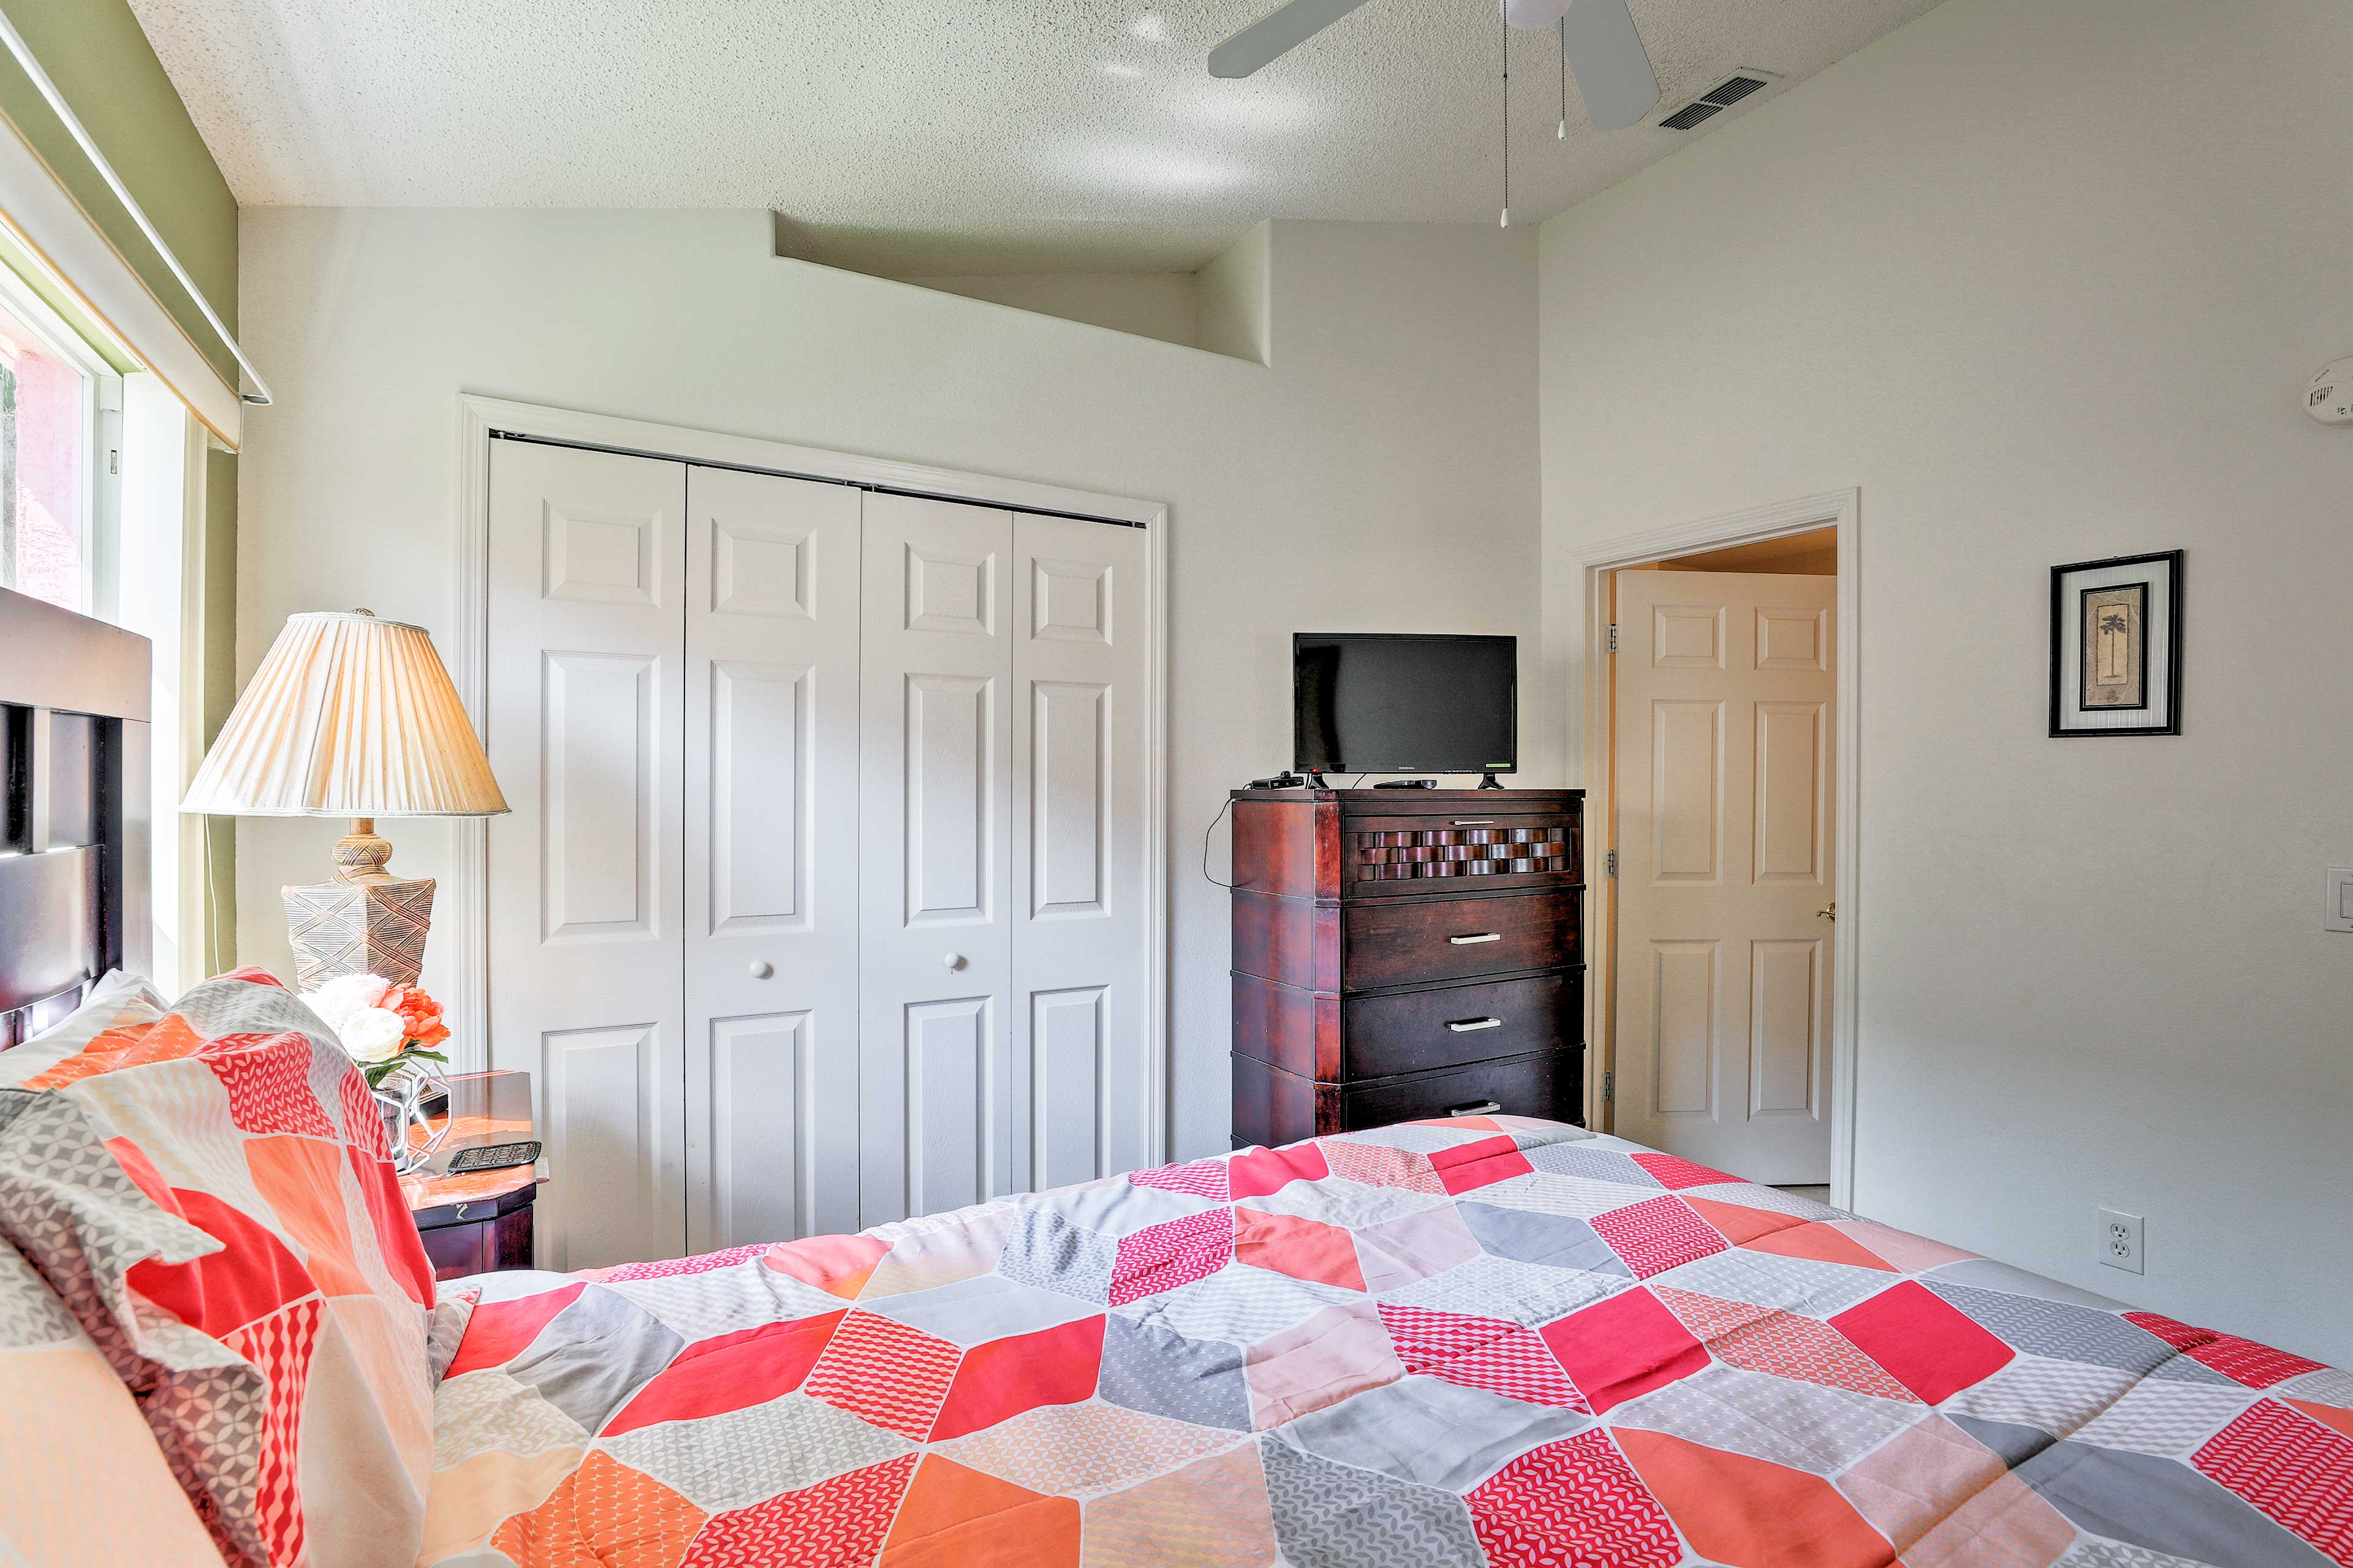 This bedroom features a queen bed waiting for your arrival!